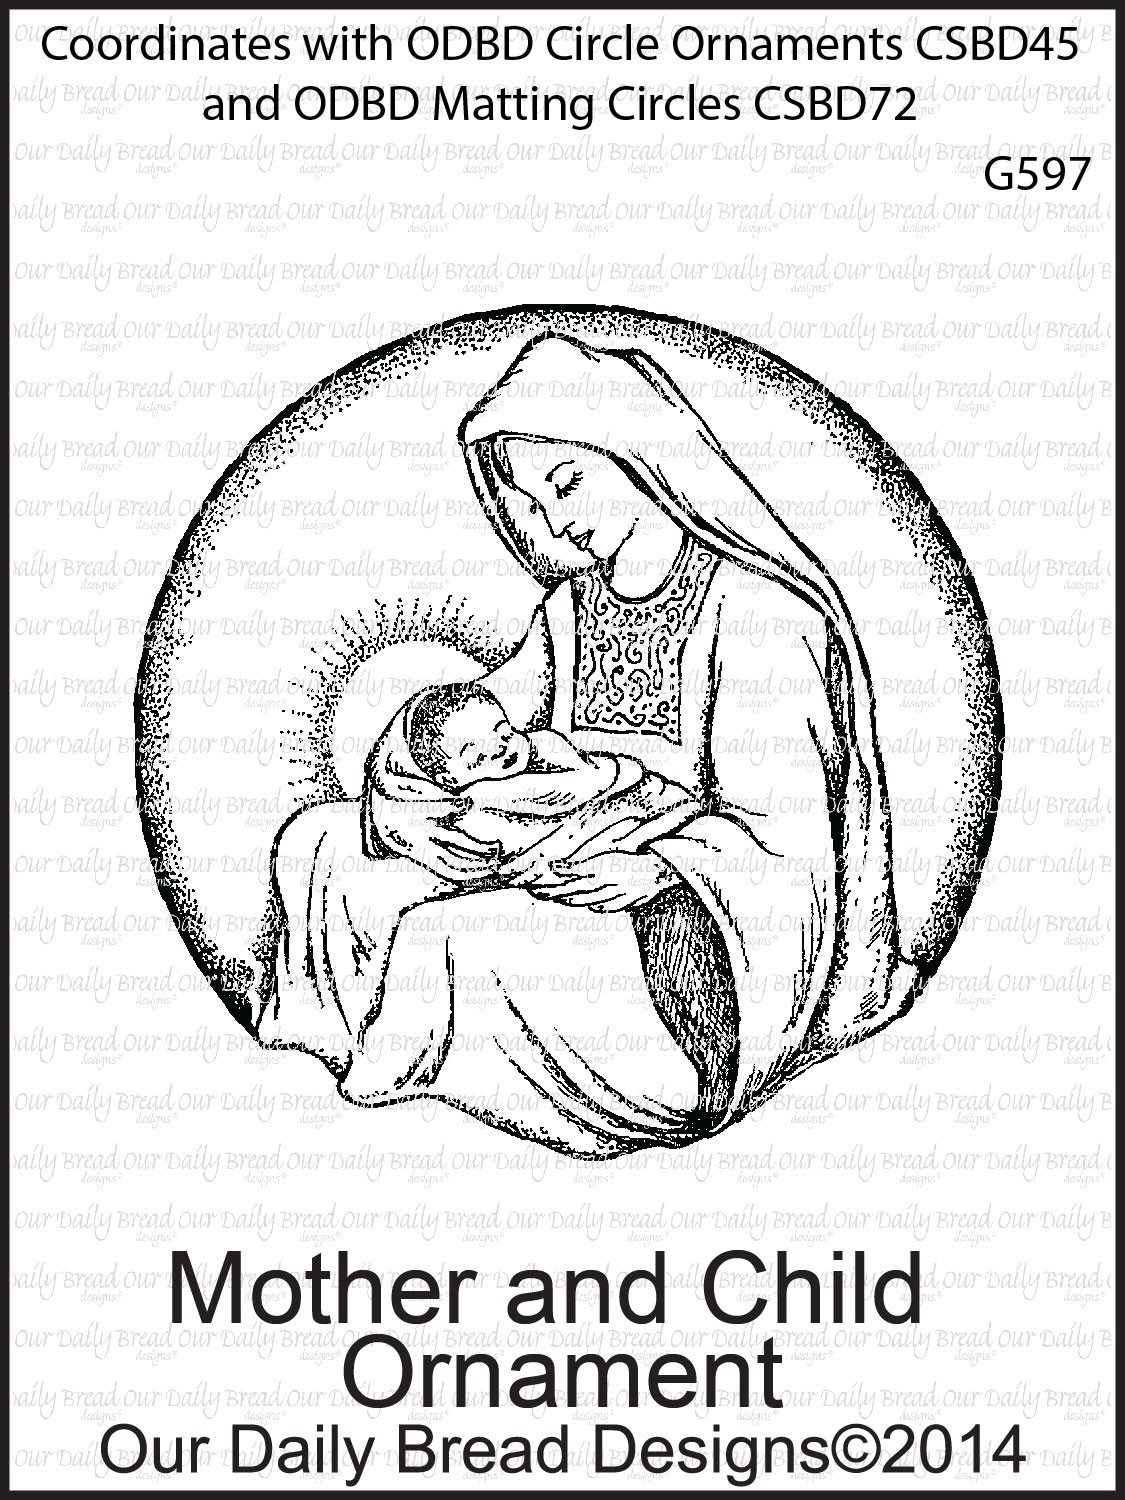 https://www.ourdailybreaddesigns.com/index.php/g597-mother-child-ornament.html